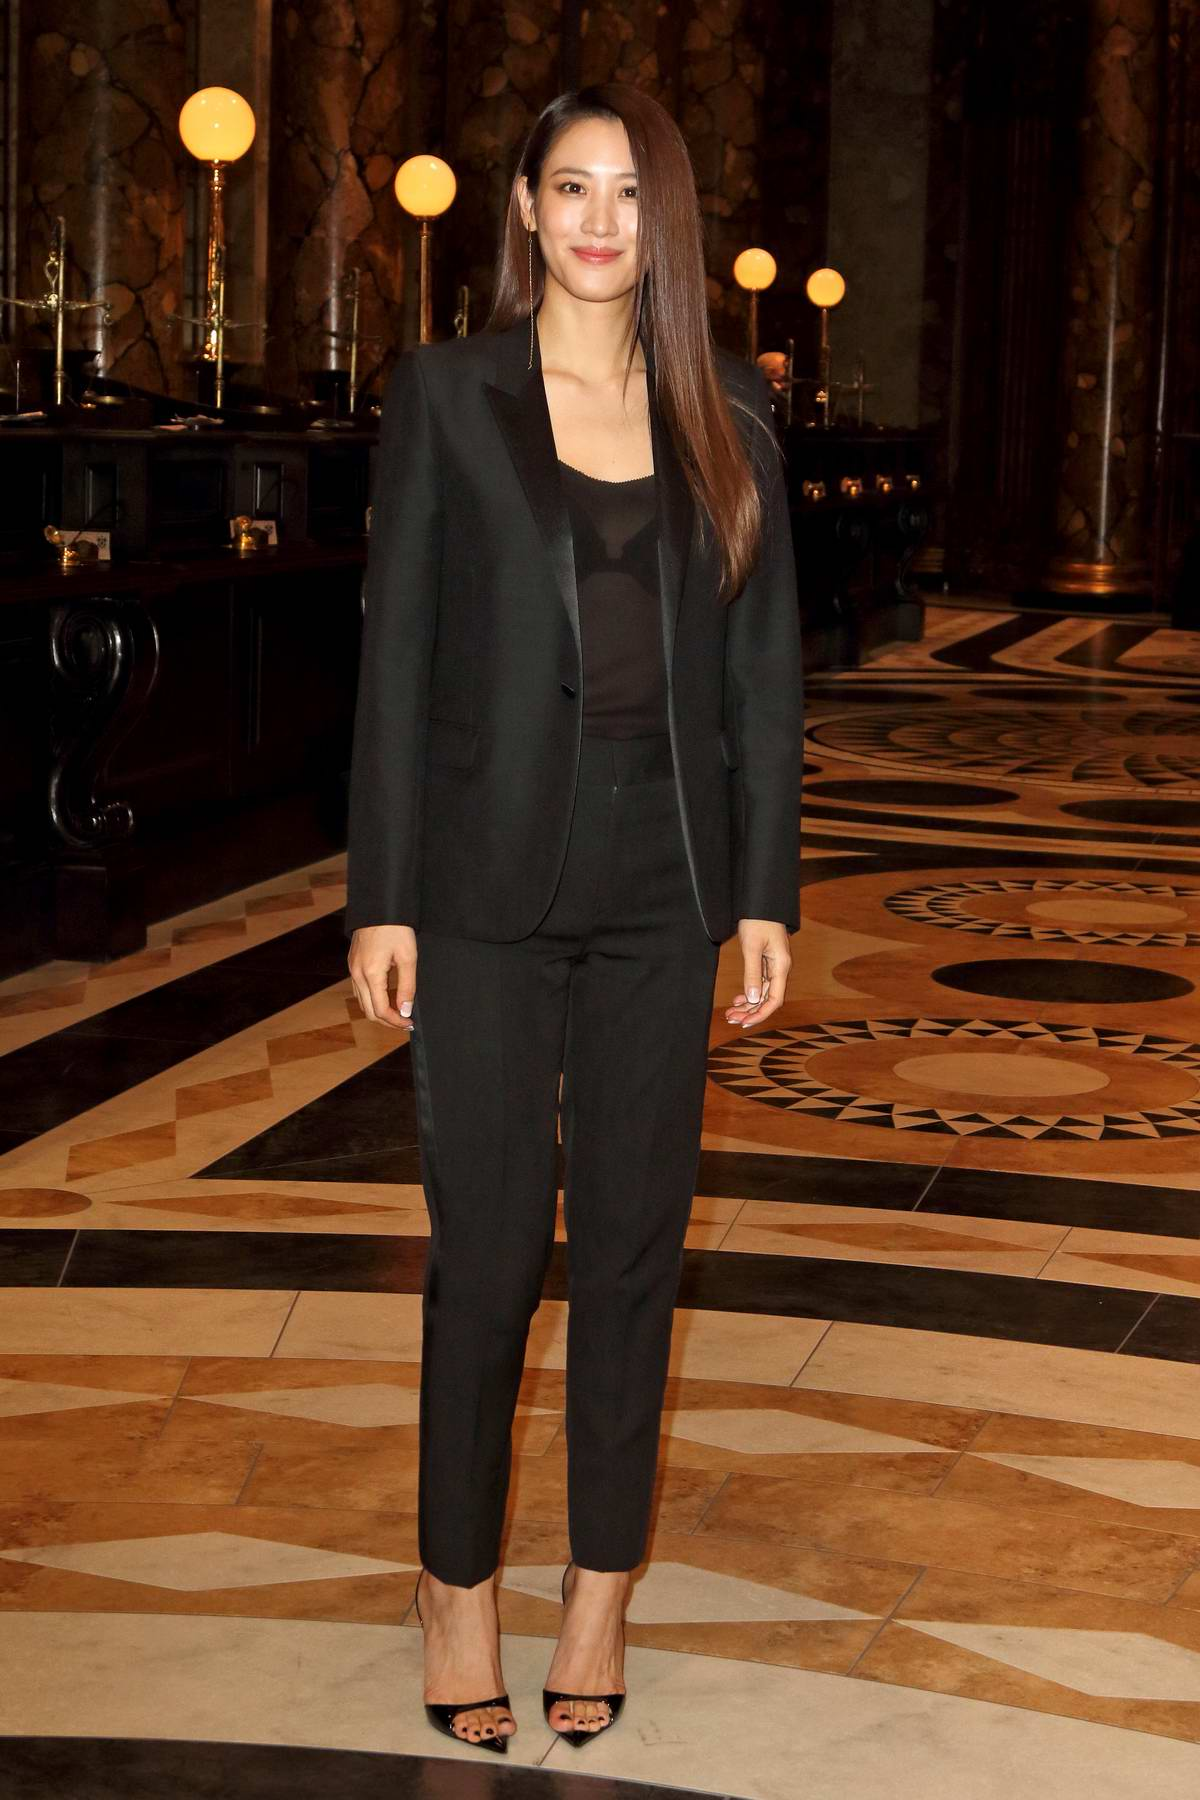 Claudia Kim attends the launch event for the Original Gringotts Wizarding Bank at Warner Bros Studio Tour in Watford, UK